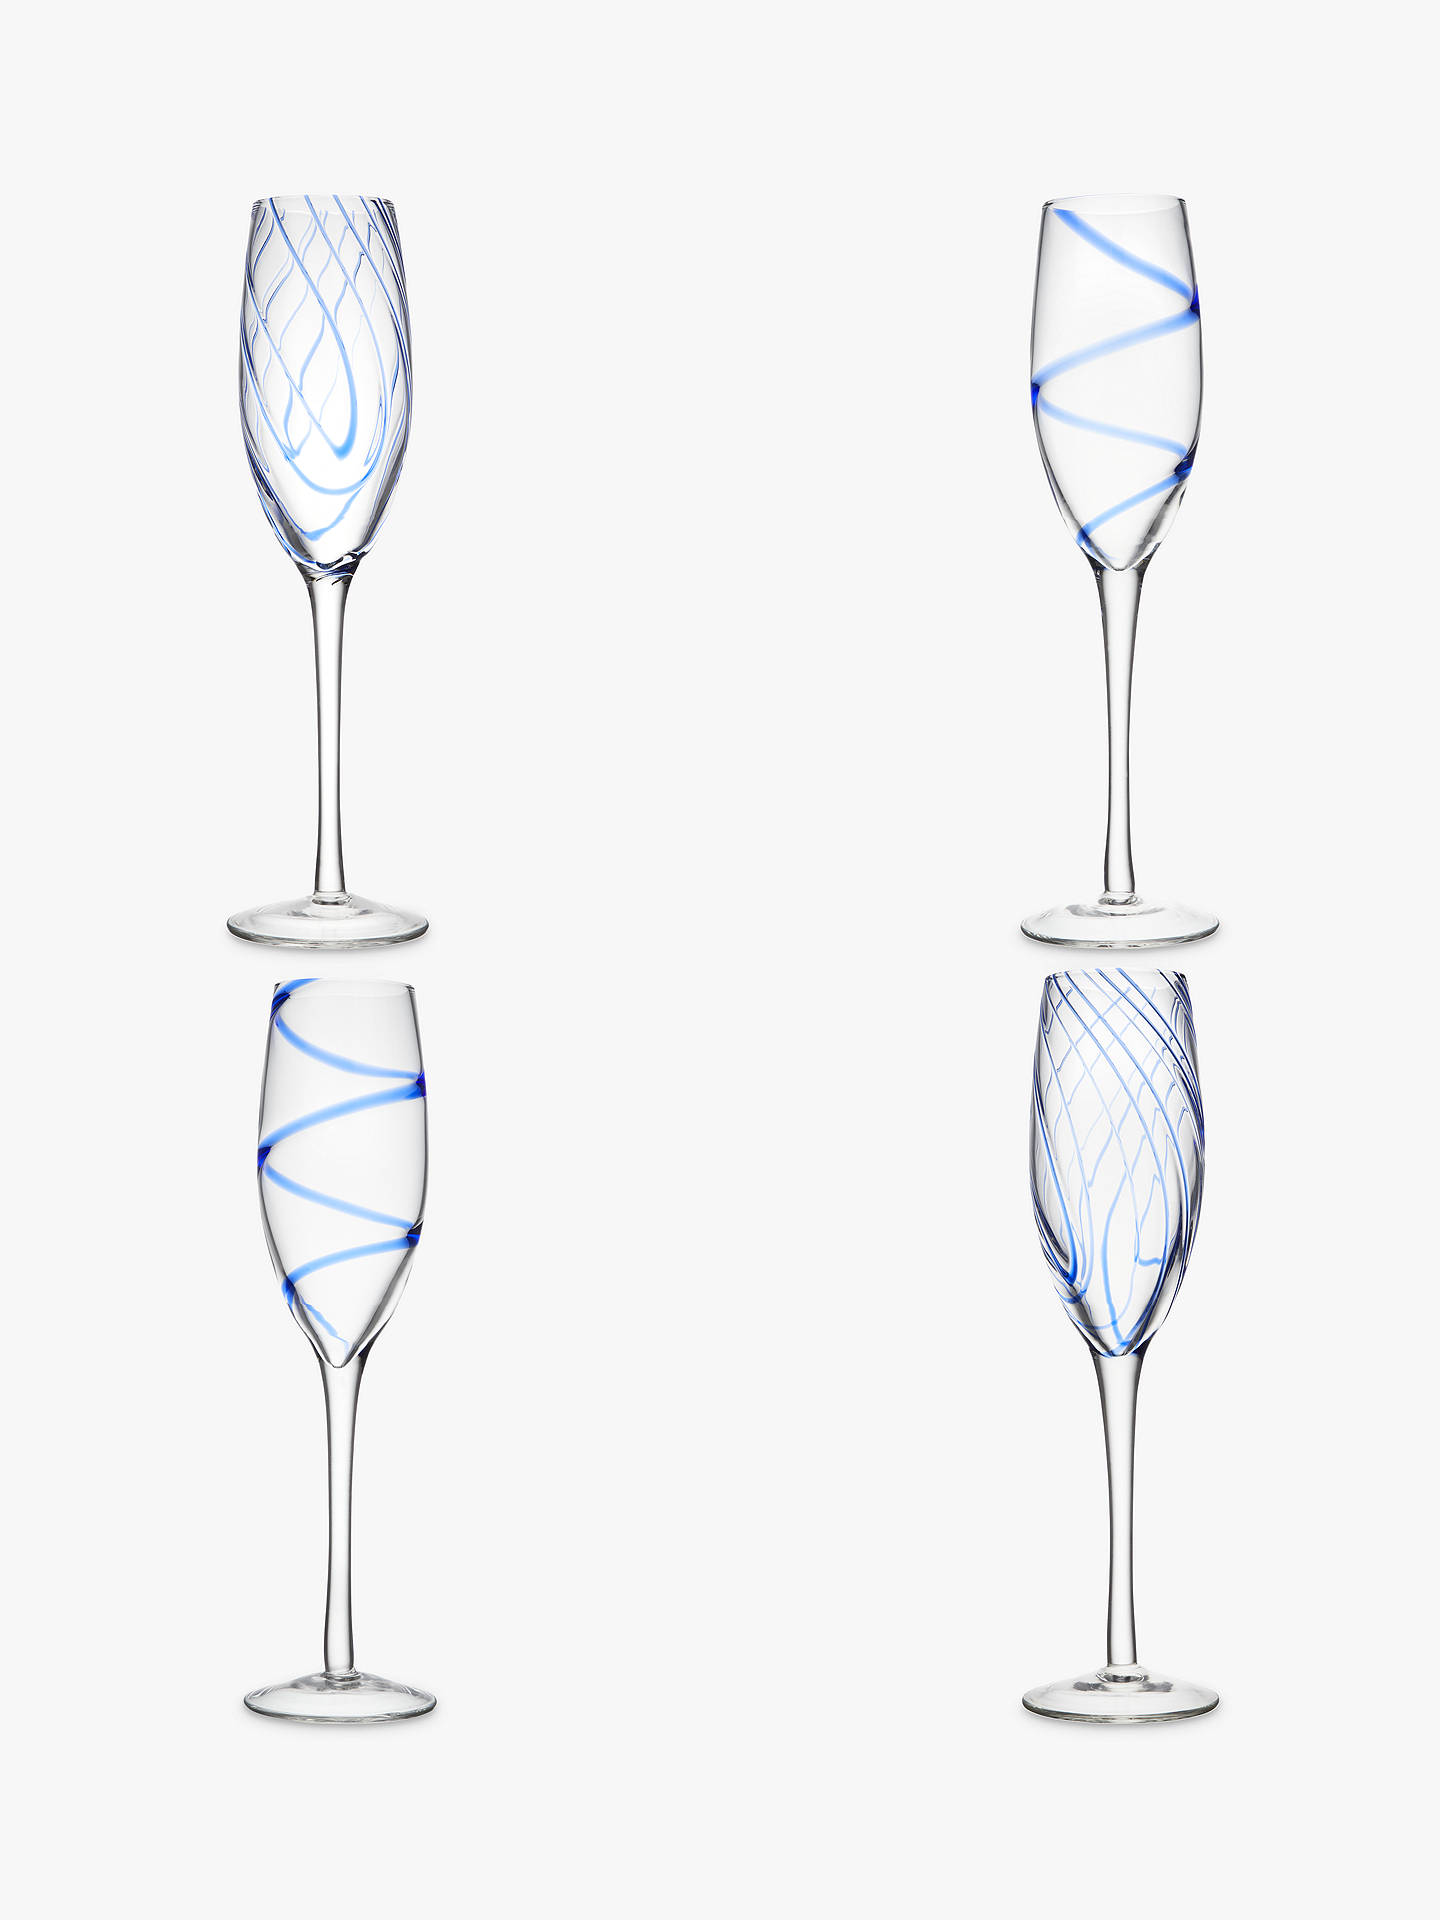 Buy John Lewis & Partners Coastal Champagne Flutes, Assorted, 250ml, Set of 4 Online at johnlewis.com